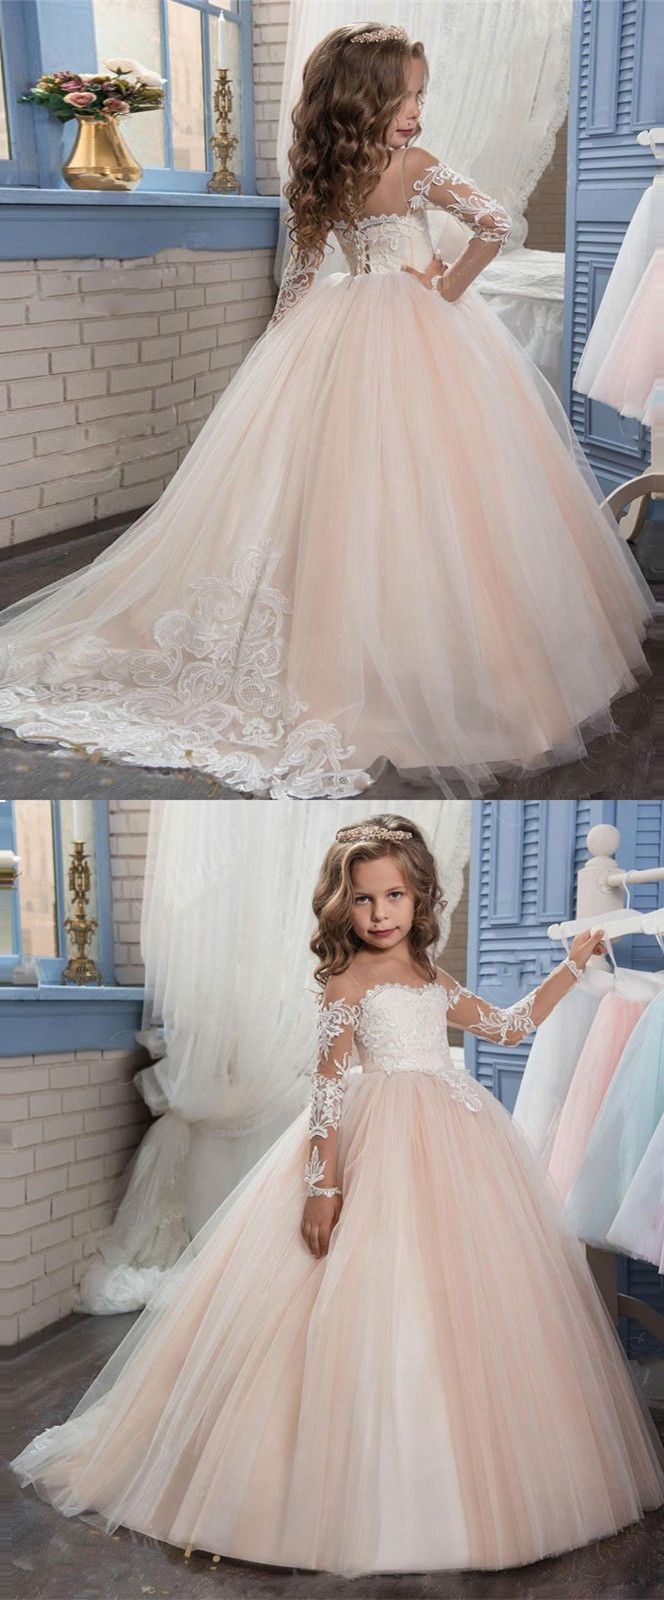 Ball gown round neck light champagne tulle flower girl dress with